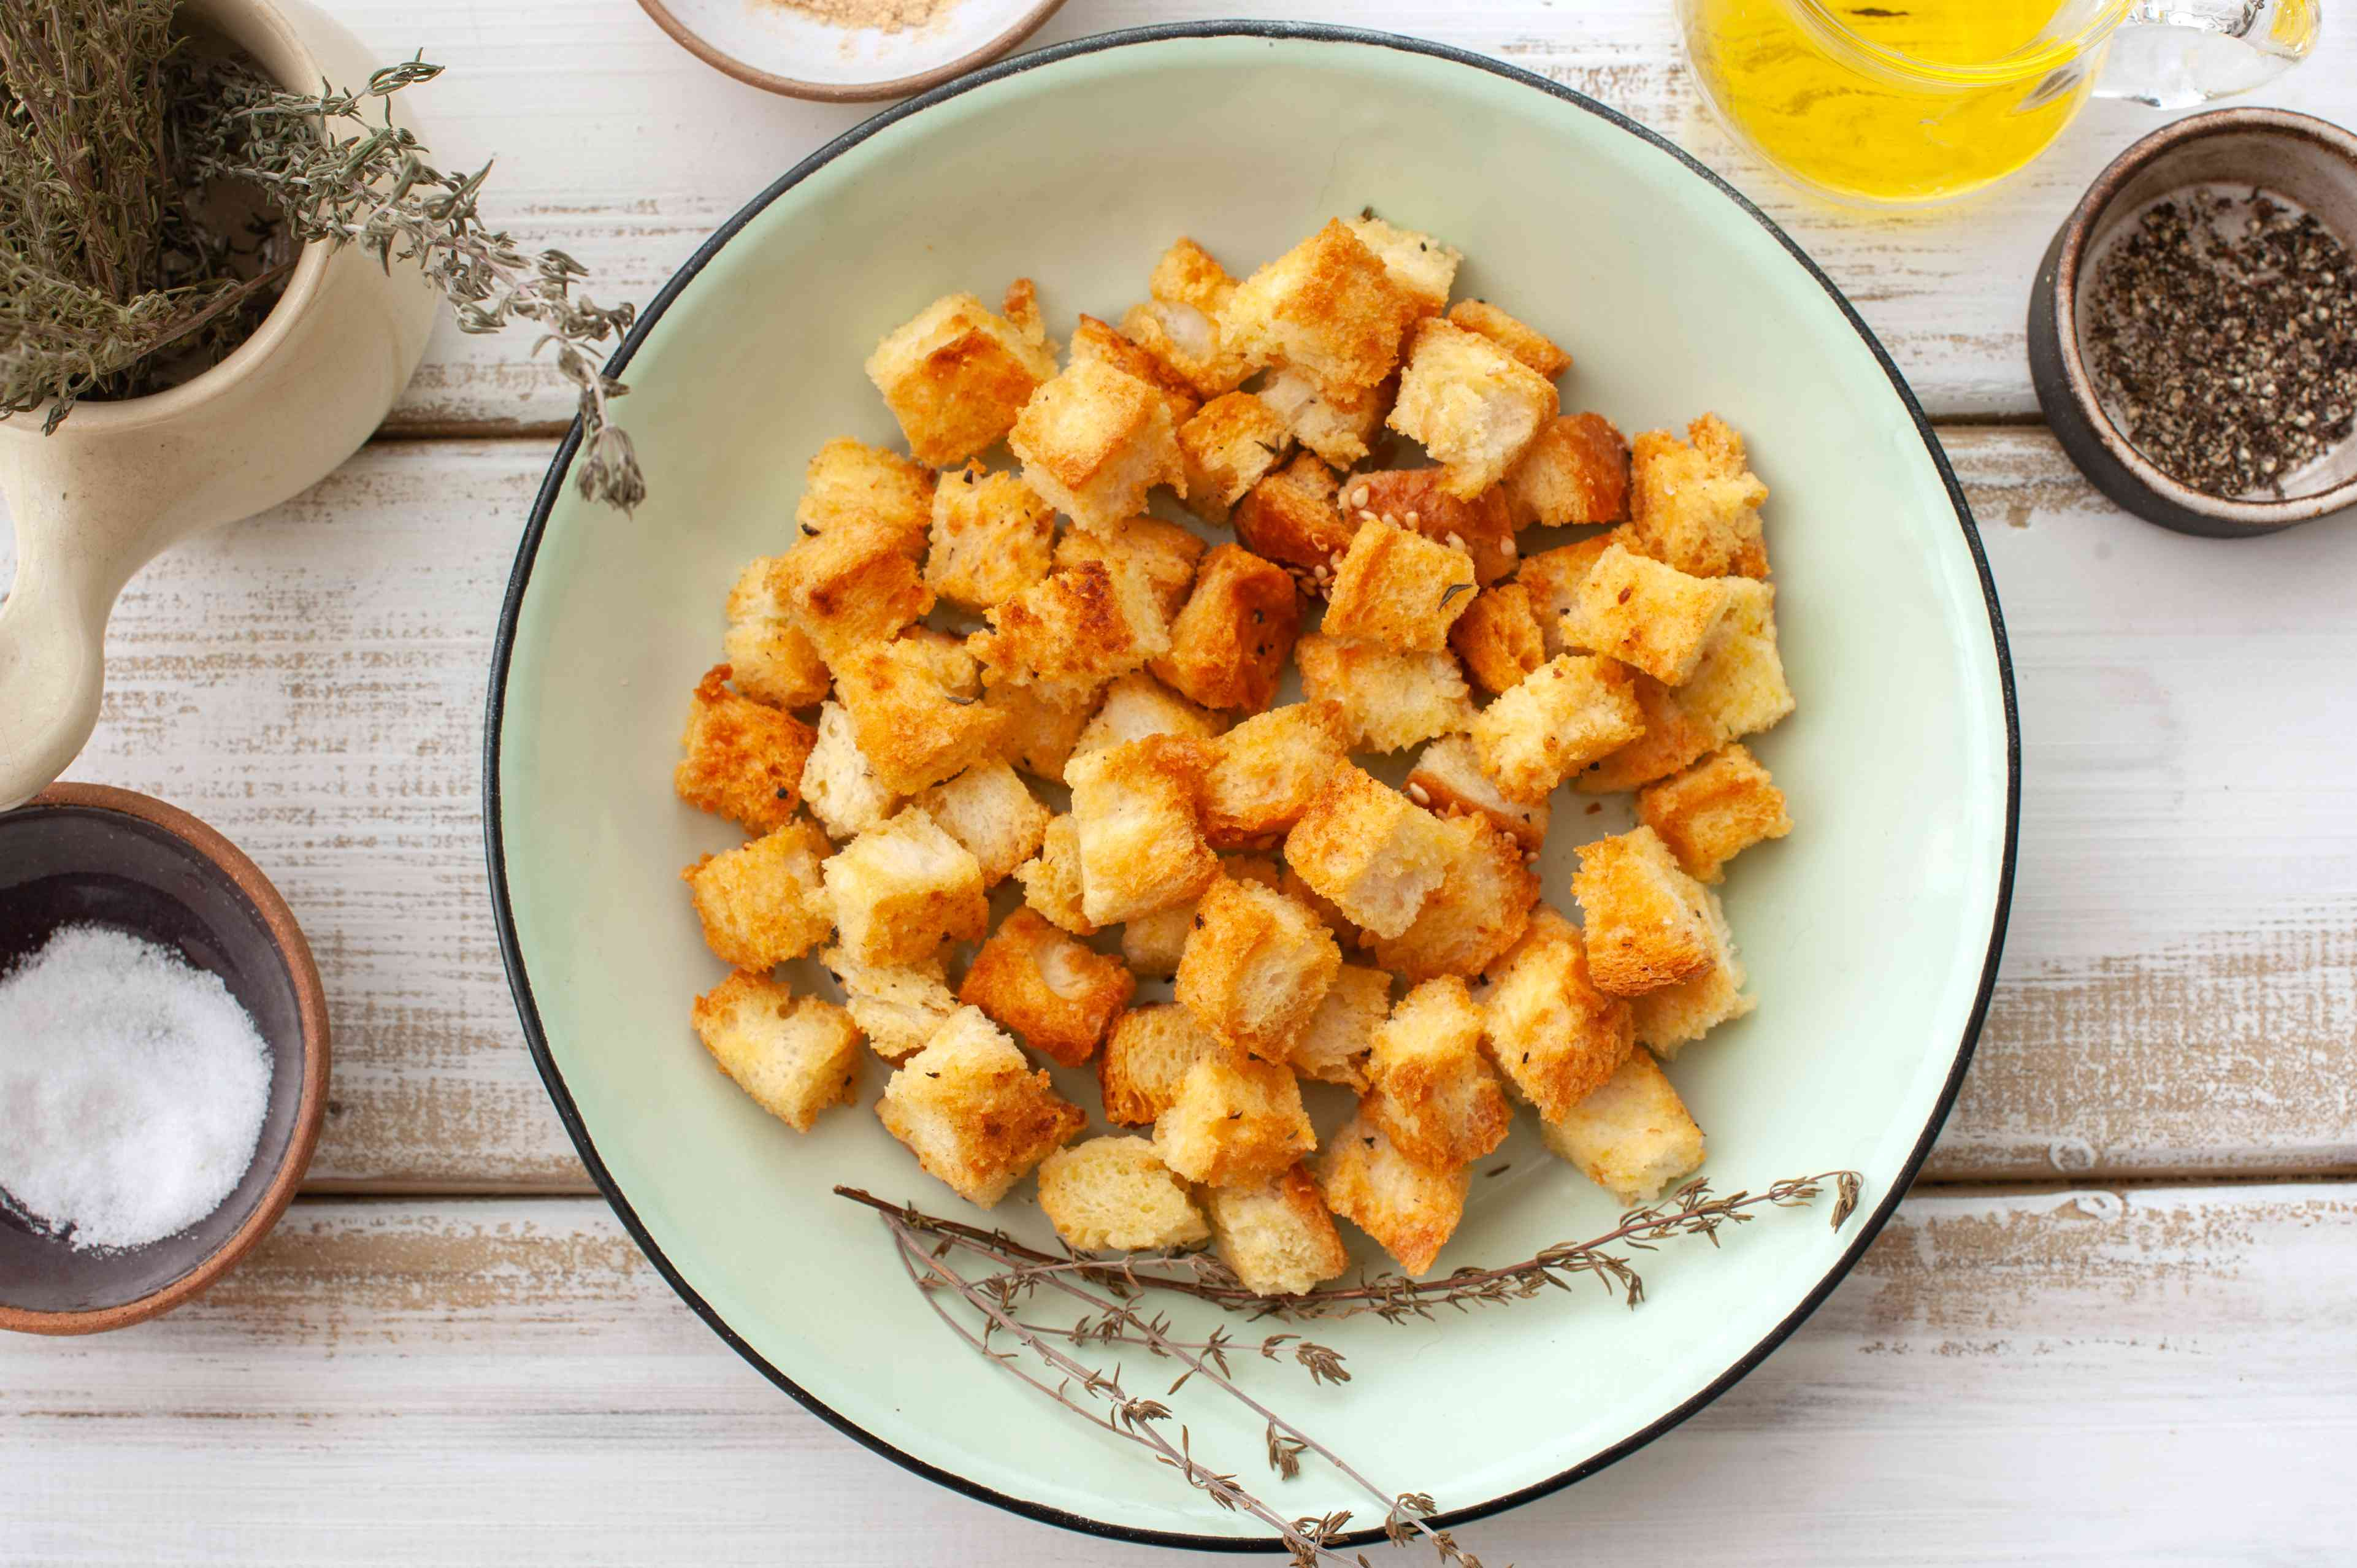 Baked croutons in a bowl